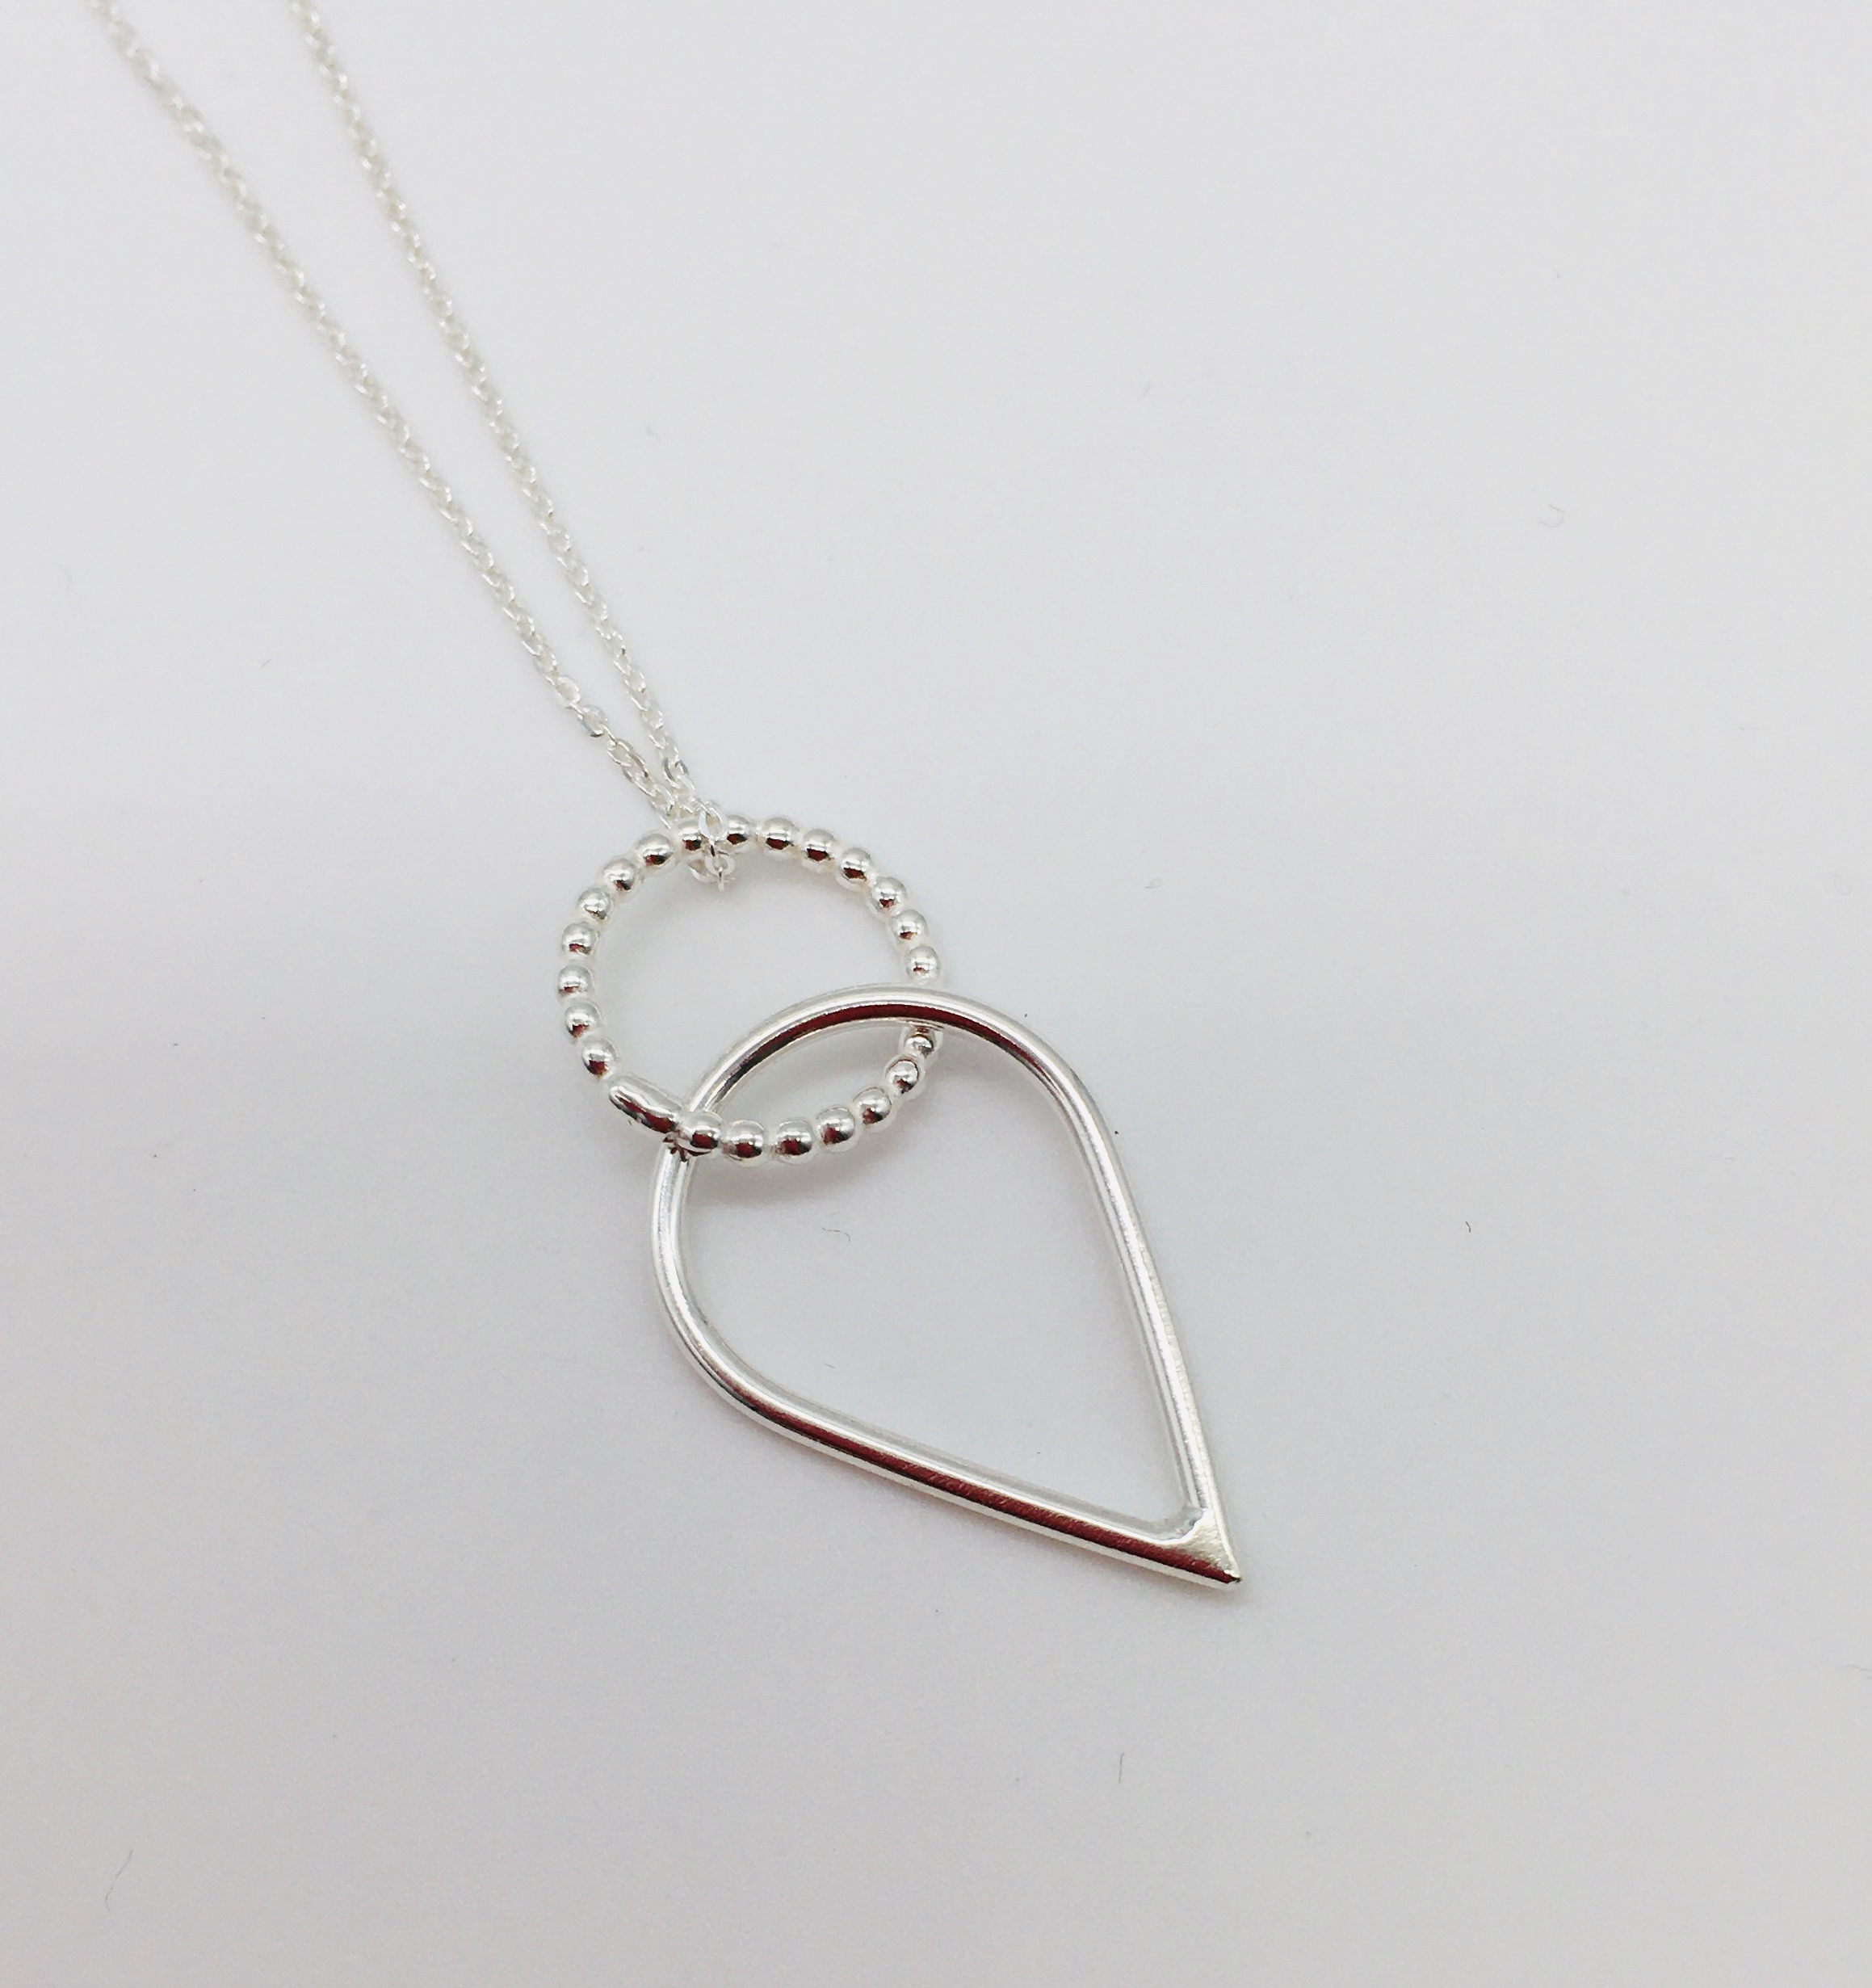 Dotty Circle and Teardrop Pendant in silver, handmade in Devon by silversmith Claire Lowe.